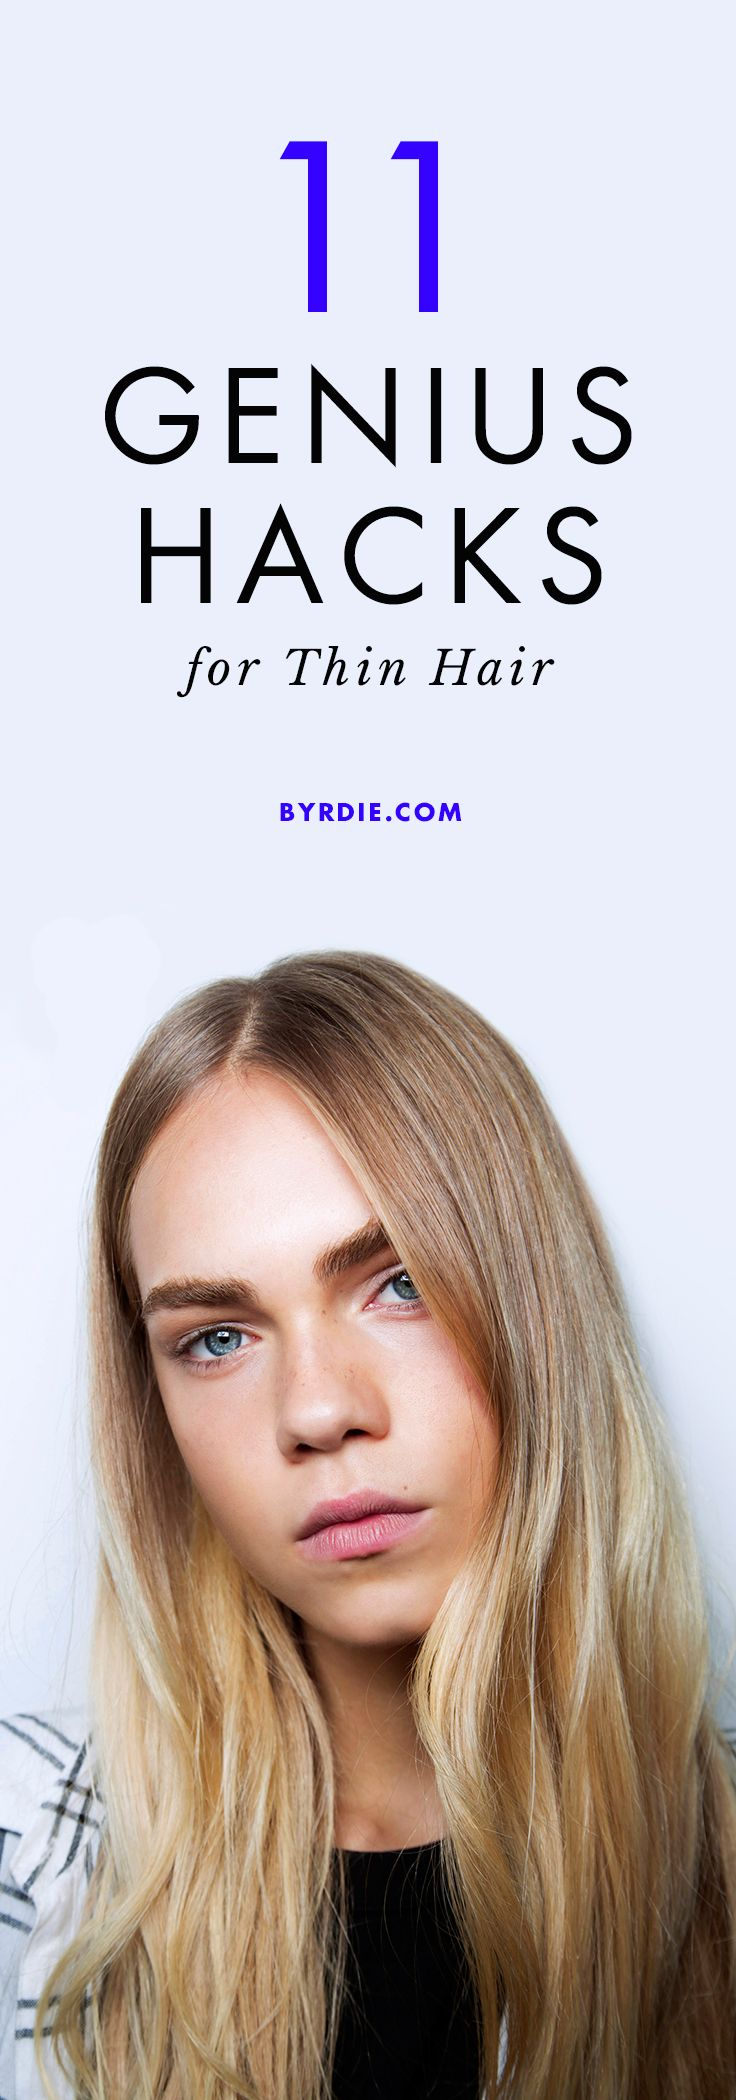 good styles for thin hair 25 best ideas about hair hairstyles on 7764 | 947c413b673b5f2d4aefa6ff938e1392